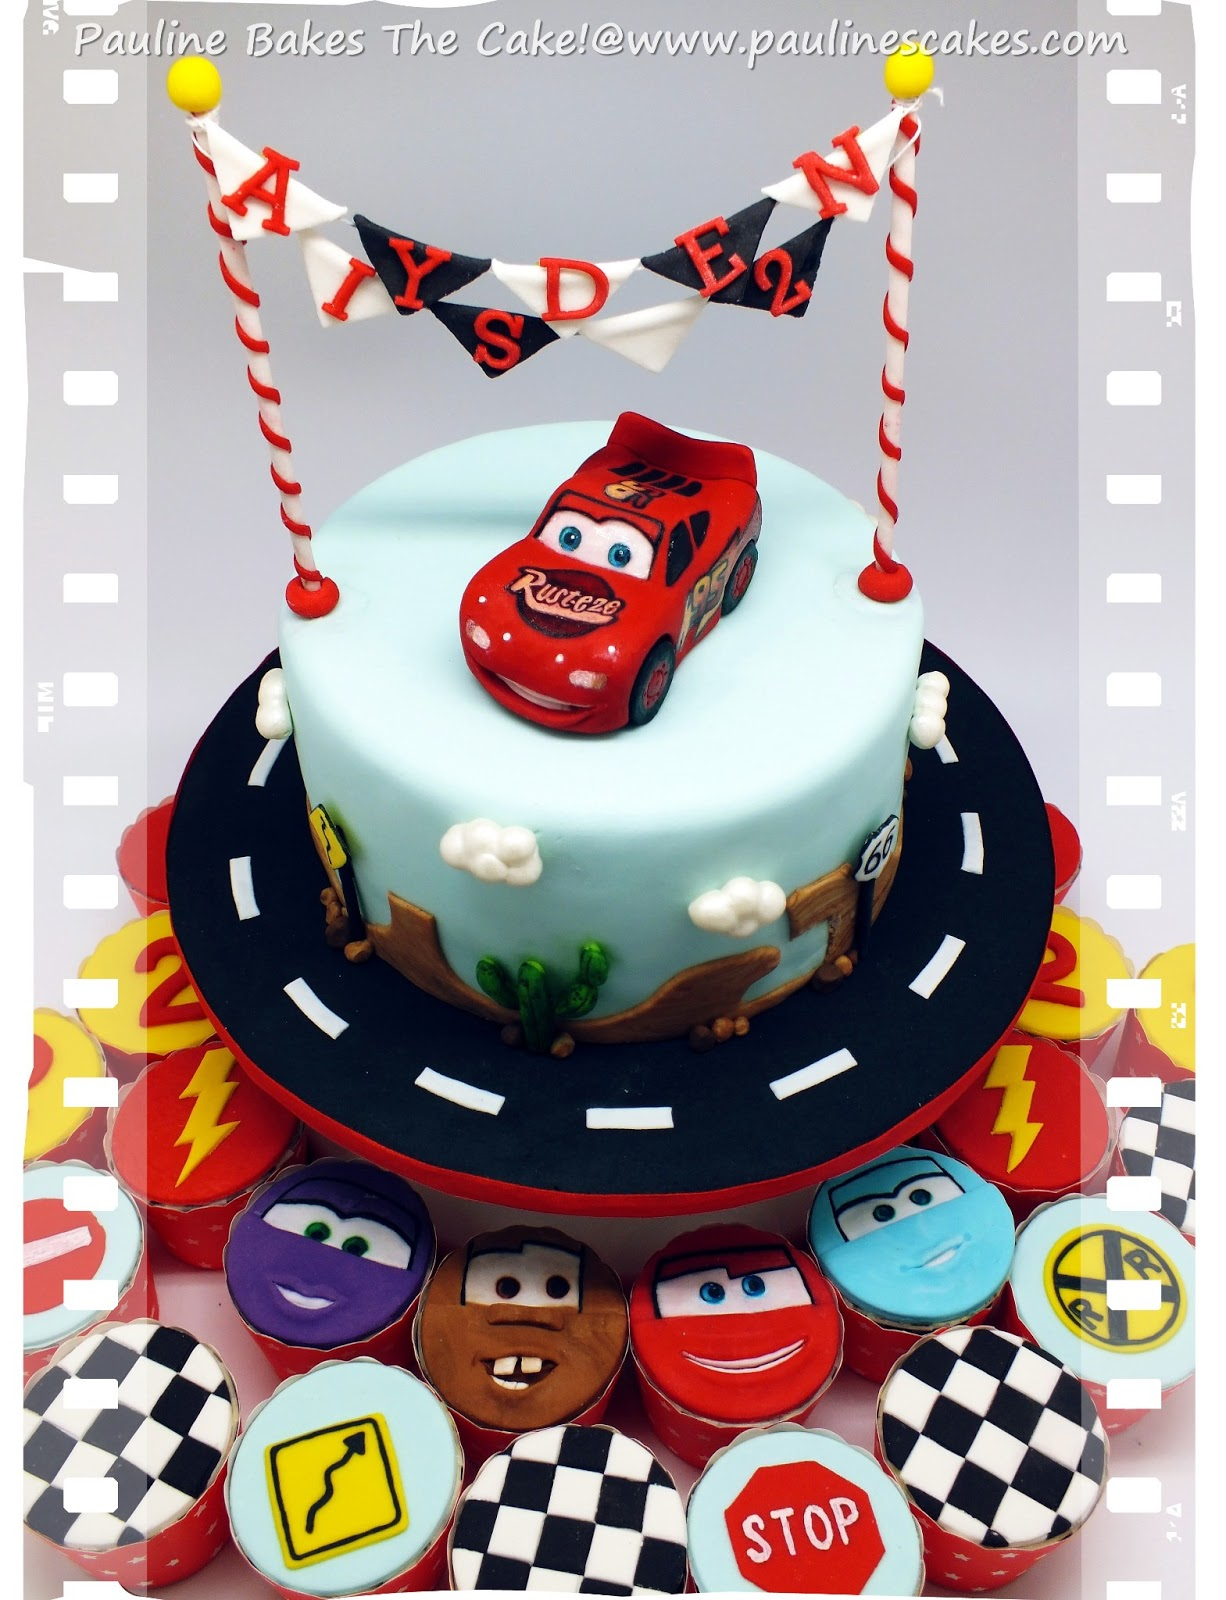 PAULINE BAKES THE CAKE Cars Lightning McQueen